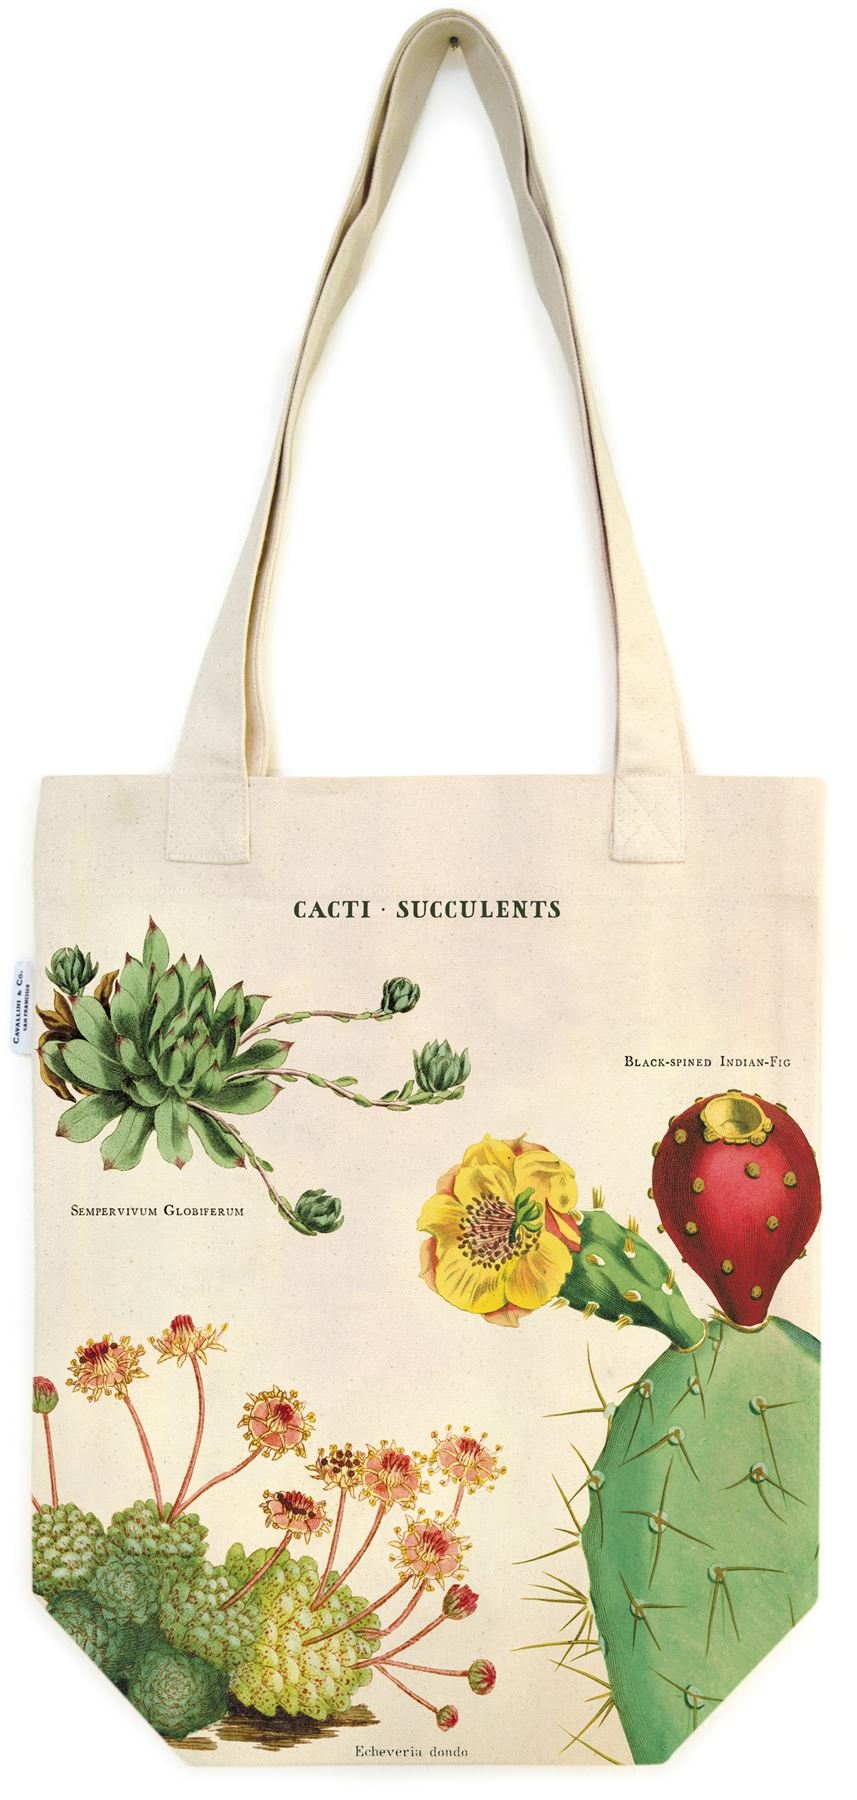 c4bcffcfd4 Cavallini - 100% Natural Cotton Vintage Tote Bag - 33x40.5cms - Cactus –  madmolly